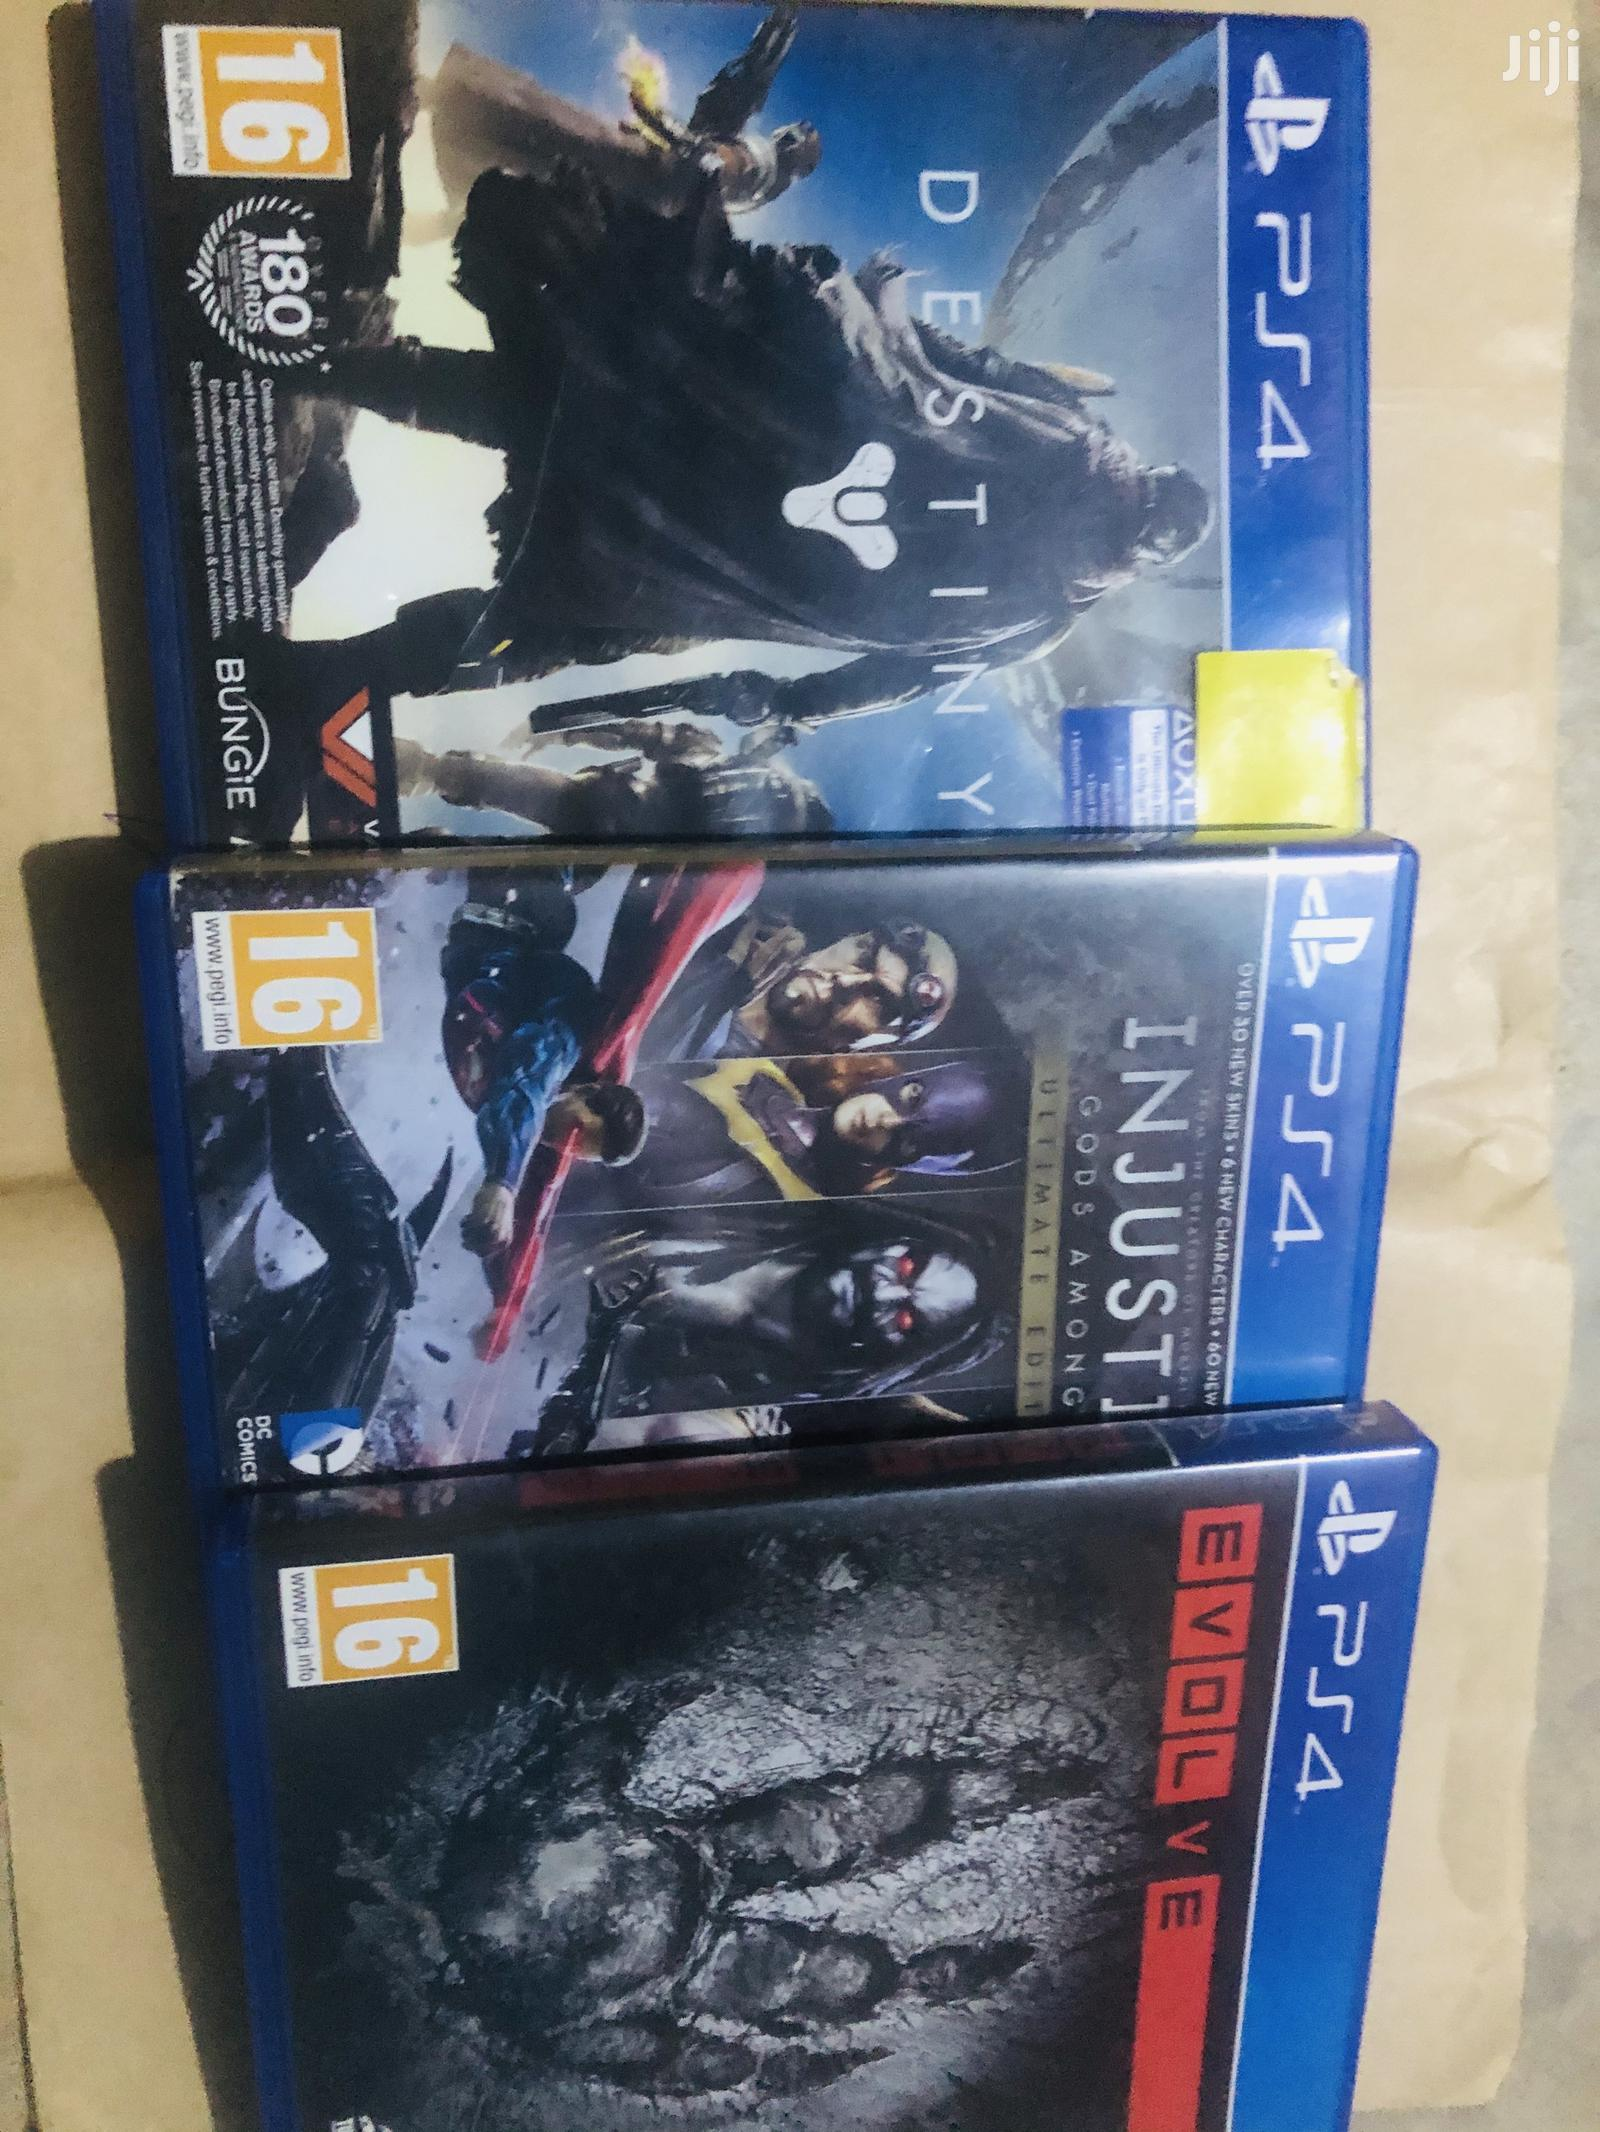 PS4 Cd  All 3 Going for a Cool Price | Video Games for sale in Kumasi Metropolitan, Ashanti, Ghana